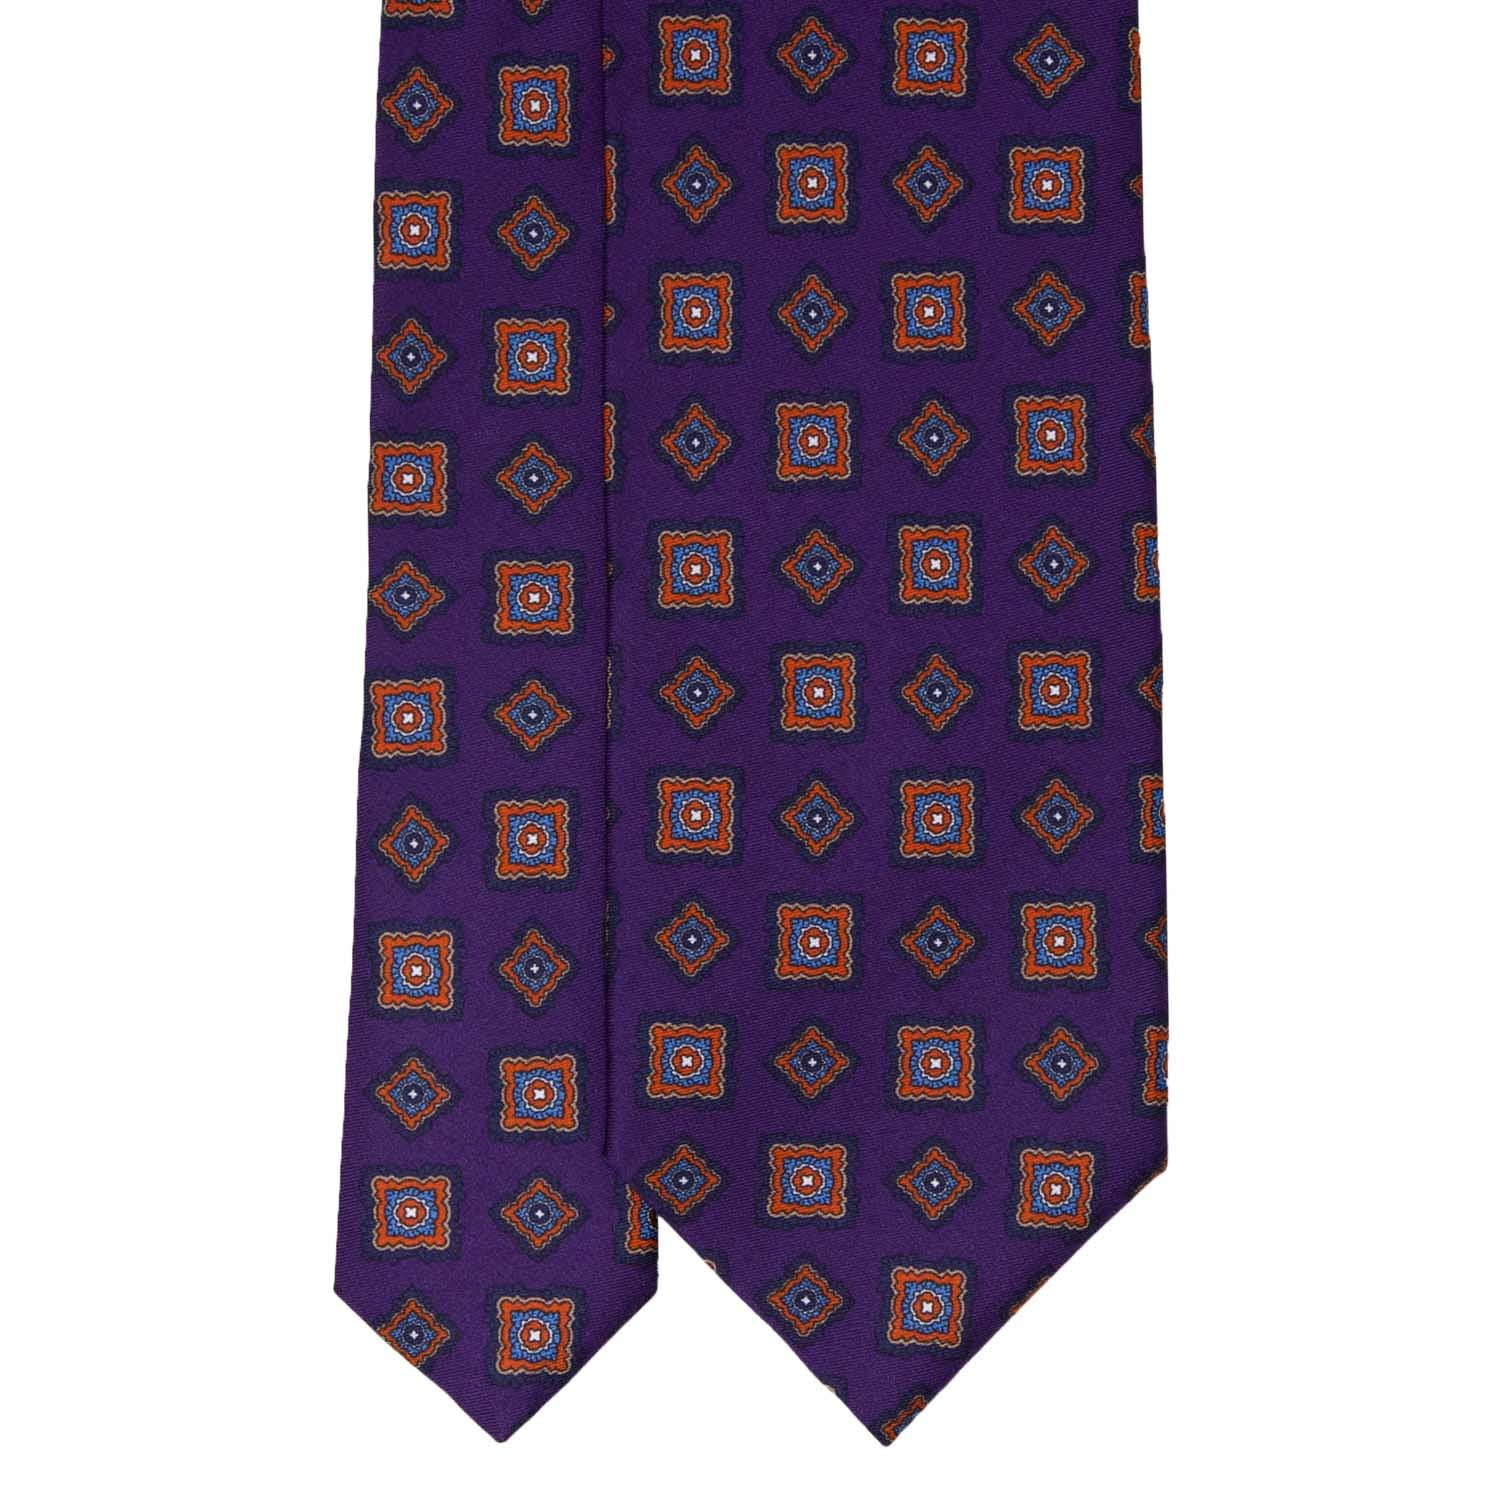 Purple with Big Rombs Pattern Silk Tie - serafinesilk